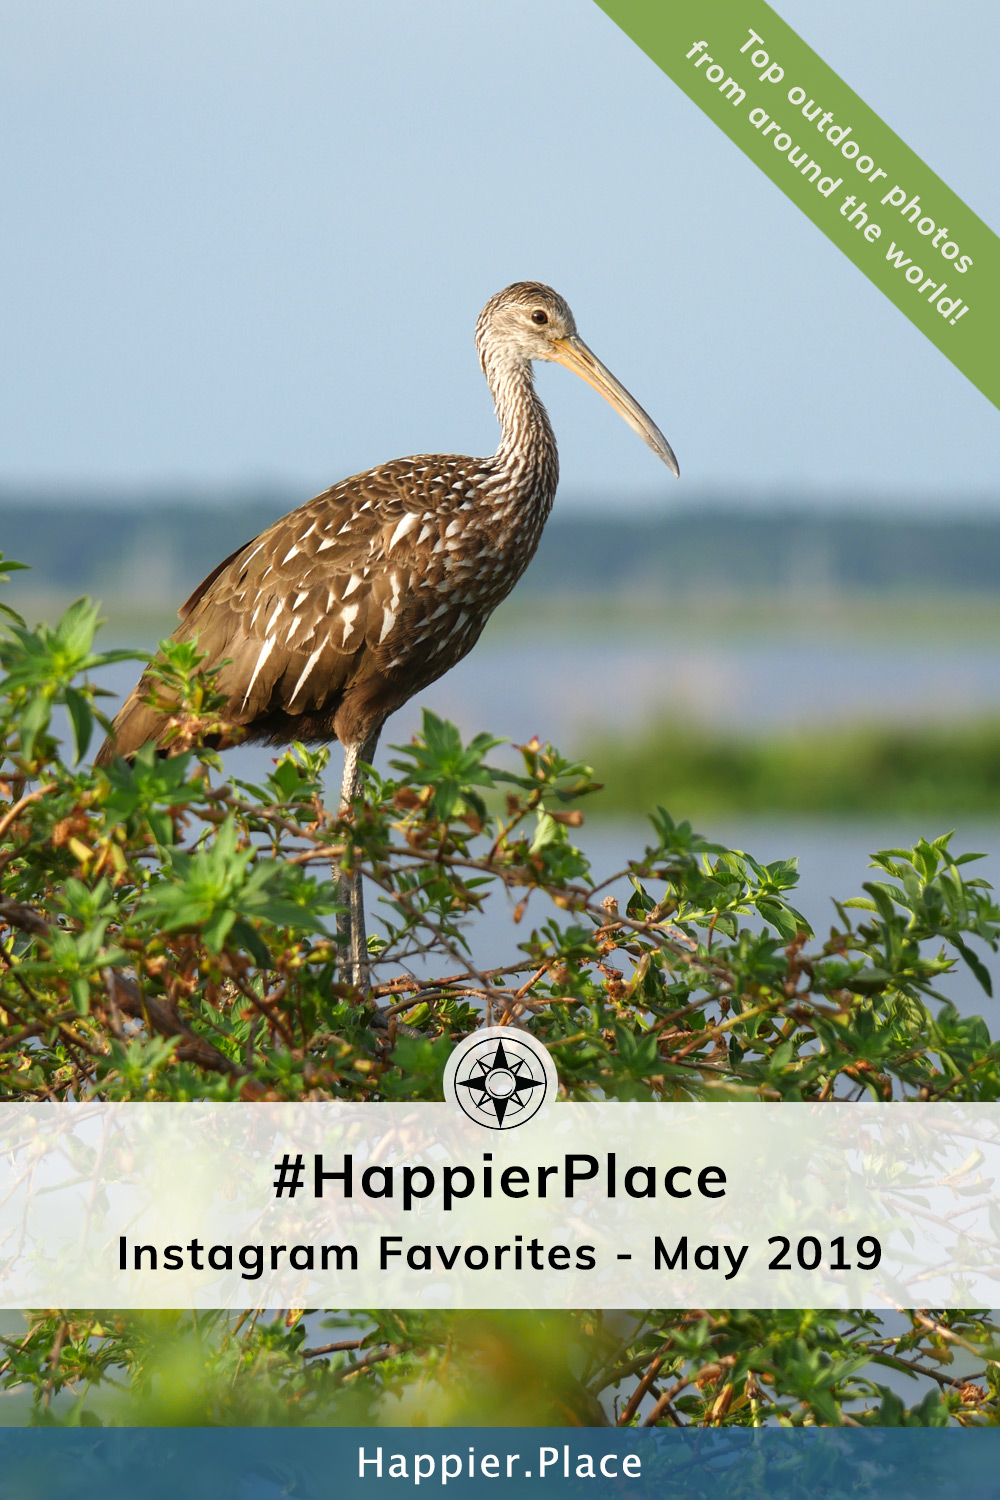 Limpkin in Florida representing  #HappierPlace Instagram Favorite Photos for May 2019 